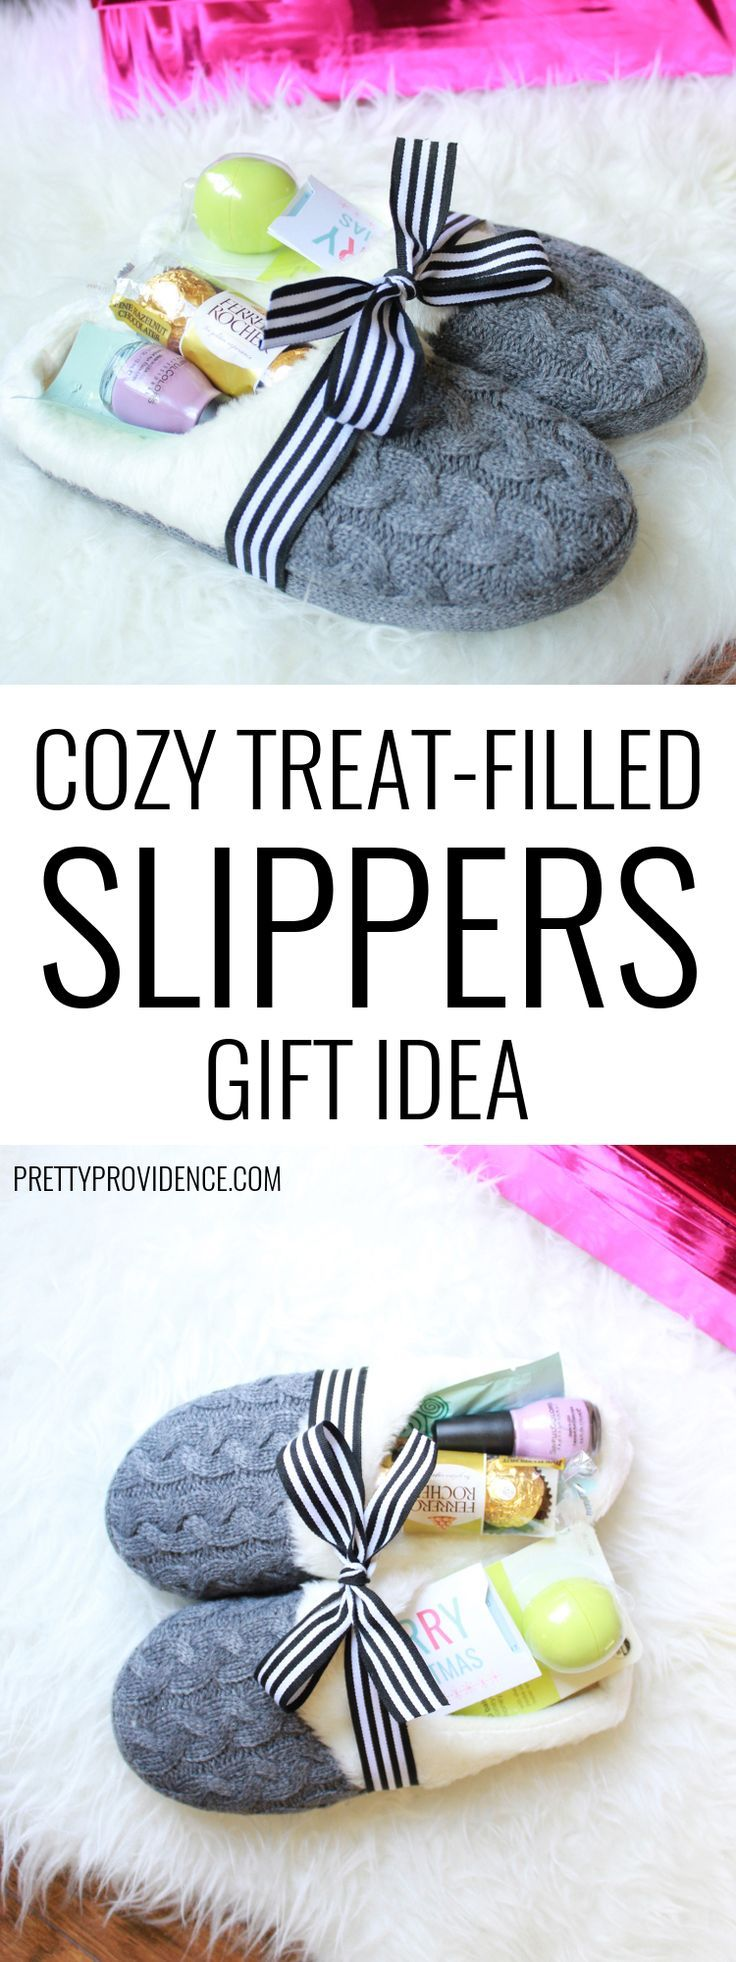 Slippers Gift Idea | DIY Gifts | Pinterest | Christmas gifts, Gifts ...